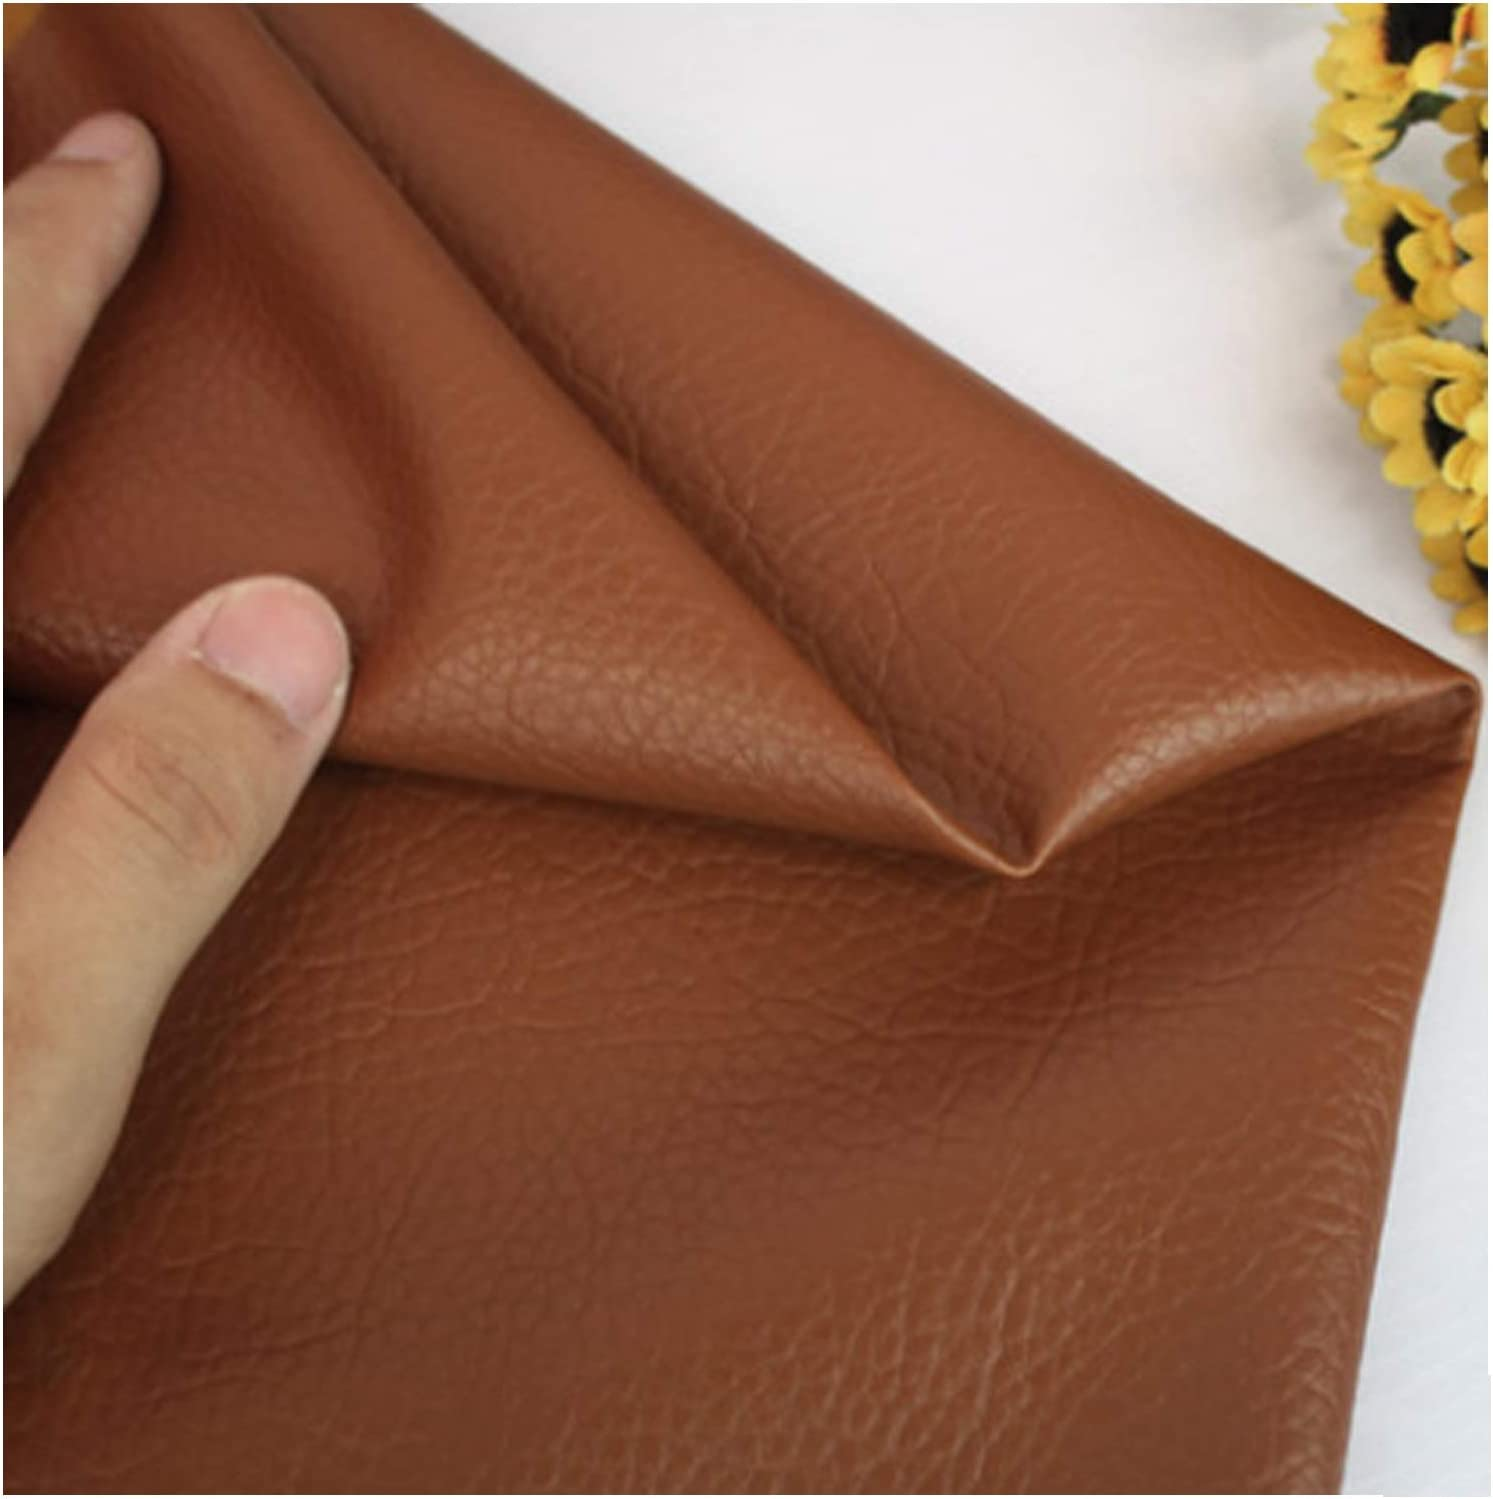 MAGFYLY Faux Leather roll Faux Leather Fabric Litchi Grain Texture Leatherette Vinyl Leathercloth Upholstery Textured Material - Half Metre 50cm X 140cm (Color : Brown, Size : 1.4x0.5m)